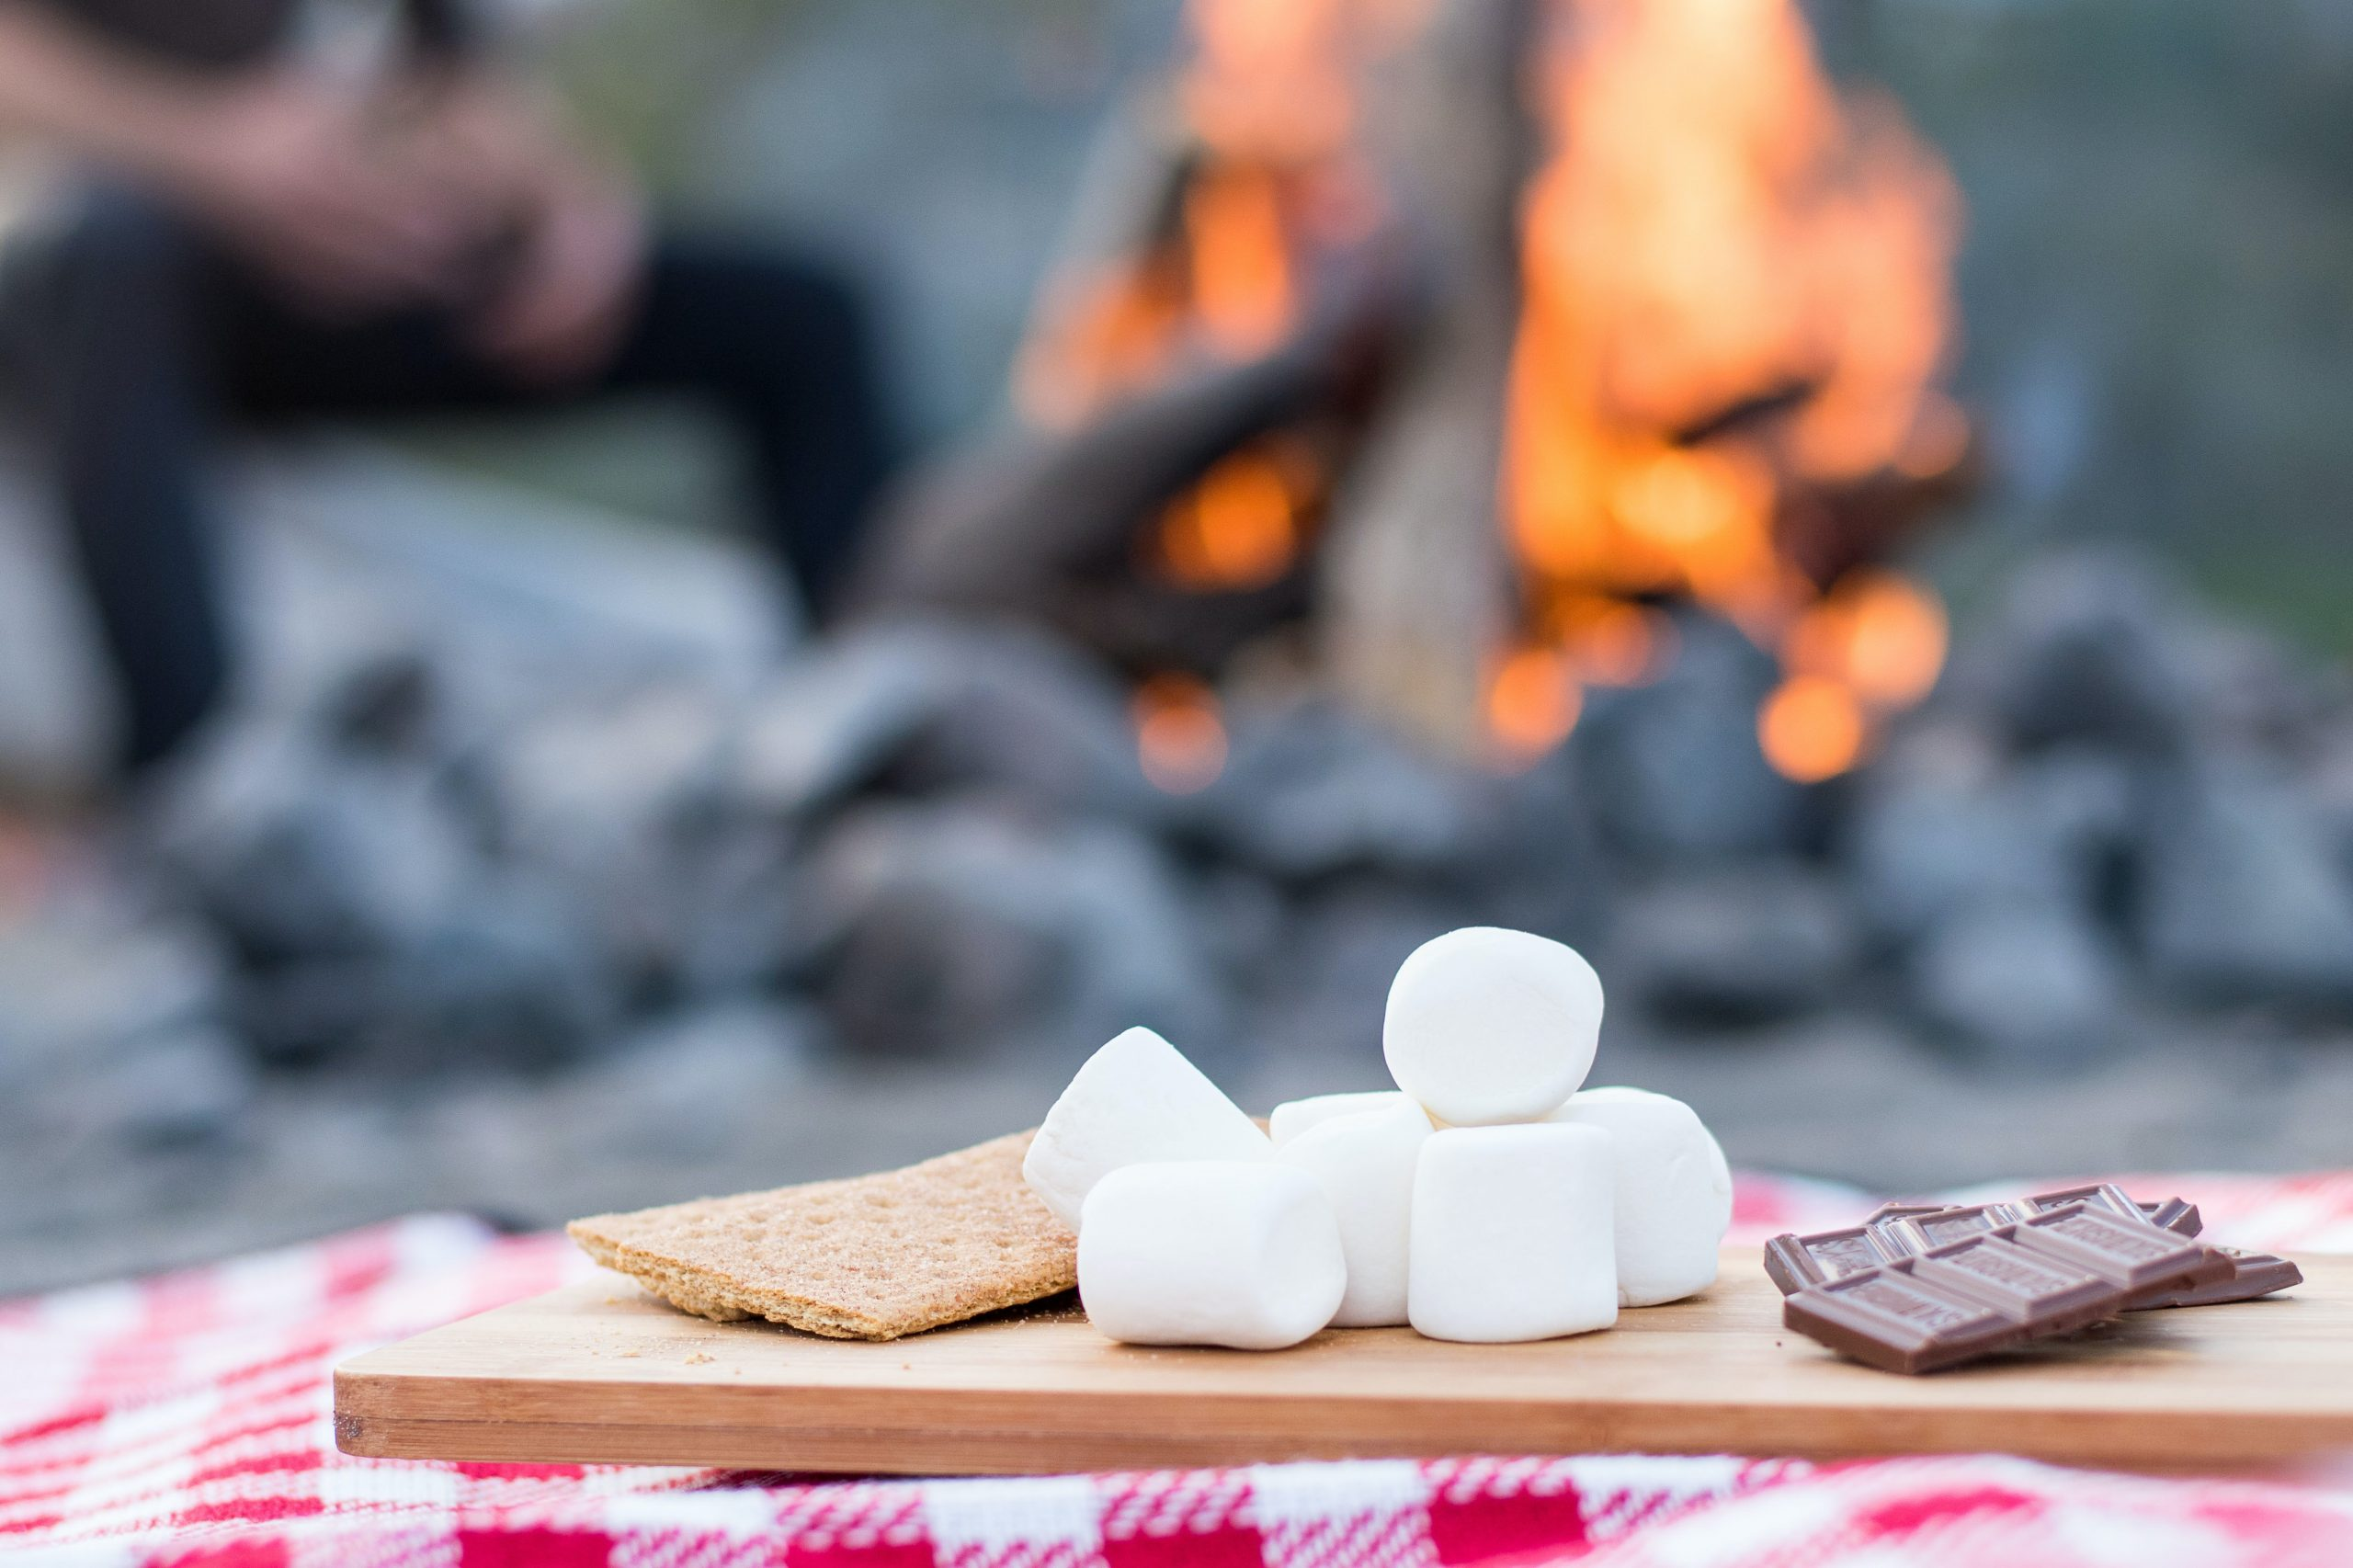 Smores ingrediants on a cutting baord by a fire pit